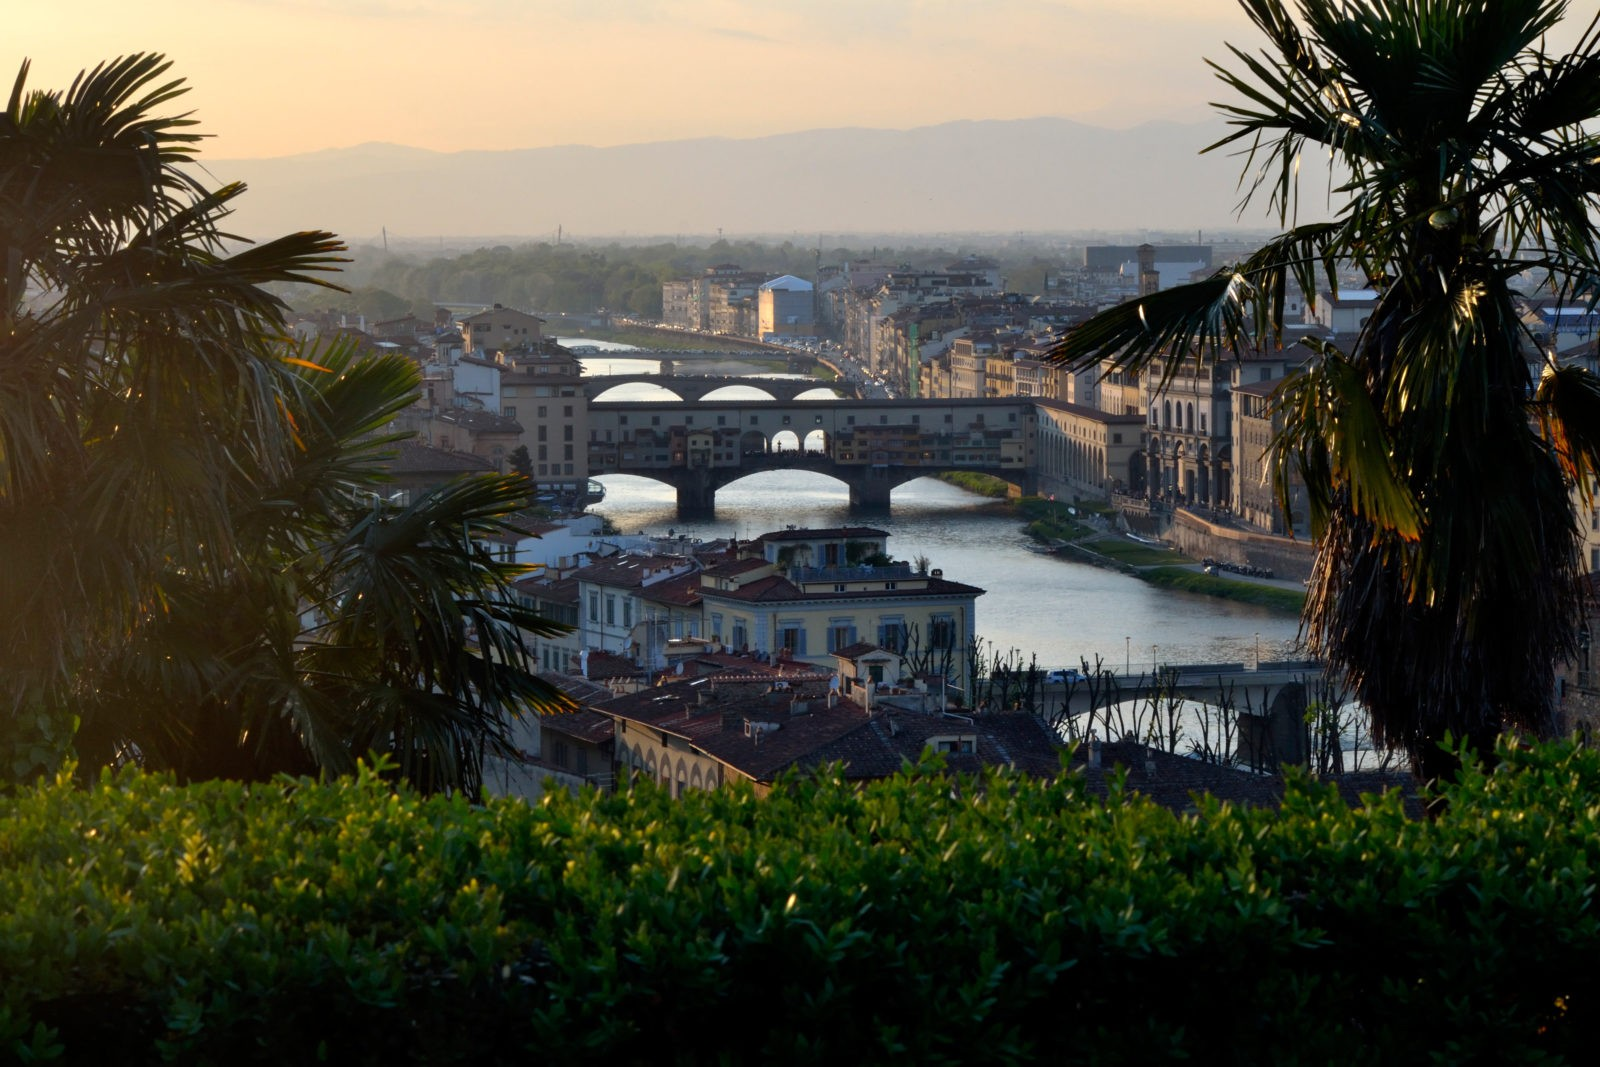 Leonardo_Innocenti_panoramica_ponte-vecchio_bed_and_breakfast_a_casa_di_virgilio_firenze